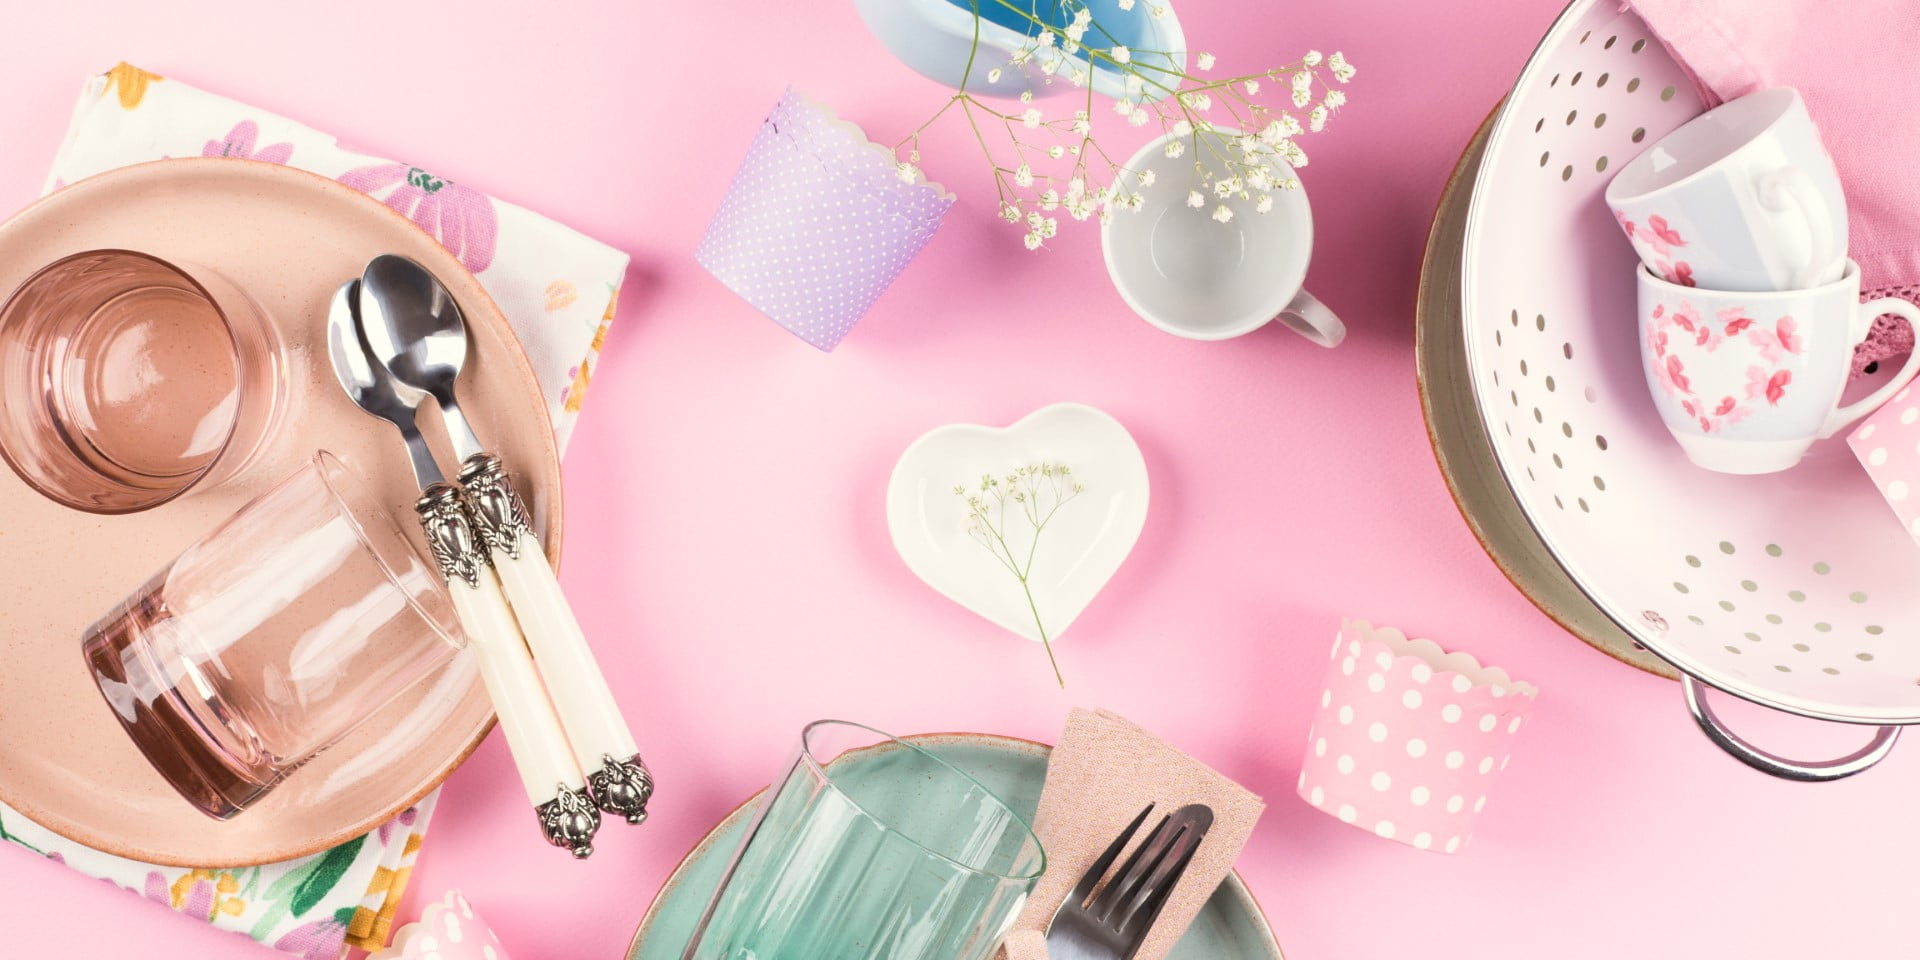 Pink Kitchen Accessories and Appliances